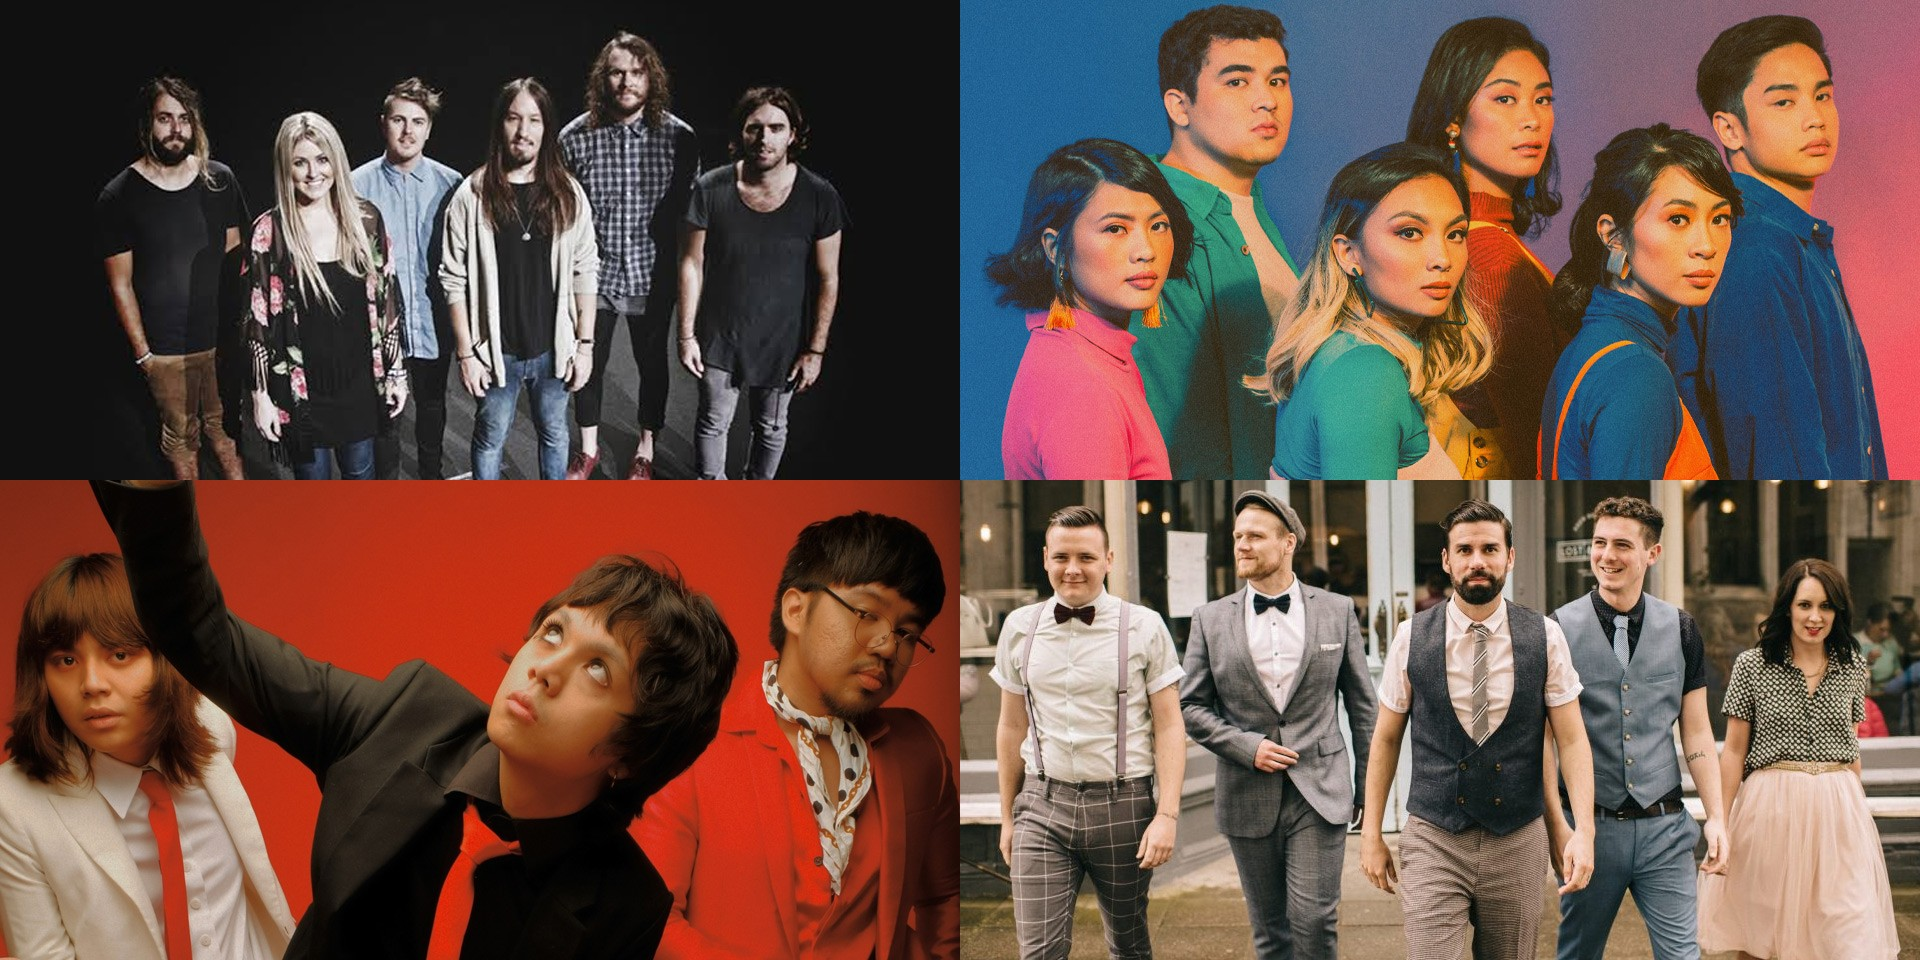 IV Of Spades, The Ransom Collective, Citipointe Worship, Rend Collective, and more to perform at FOUND Music Festival